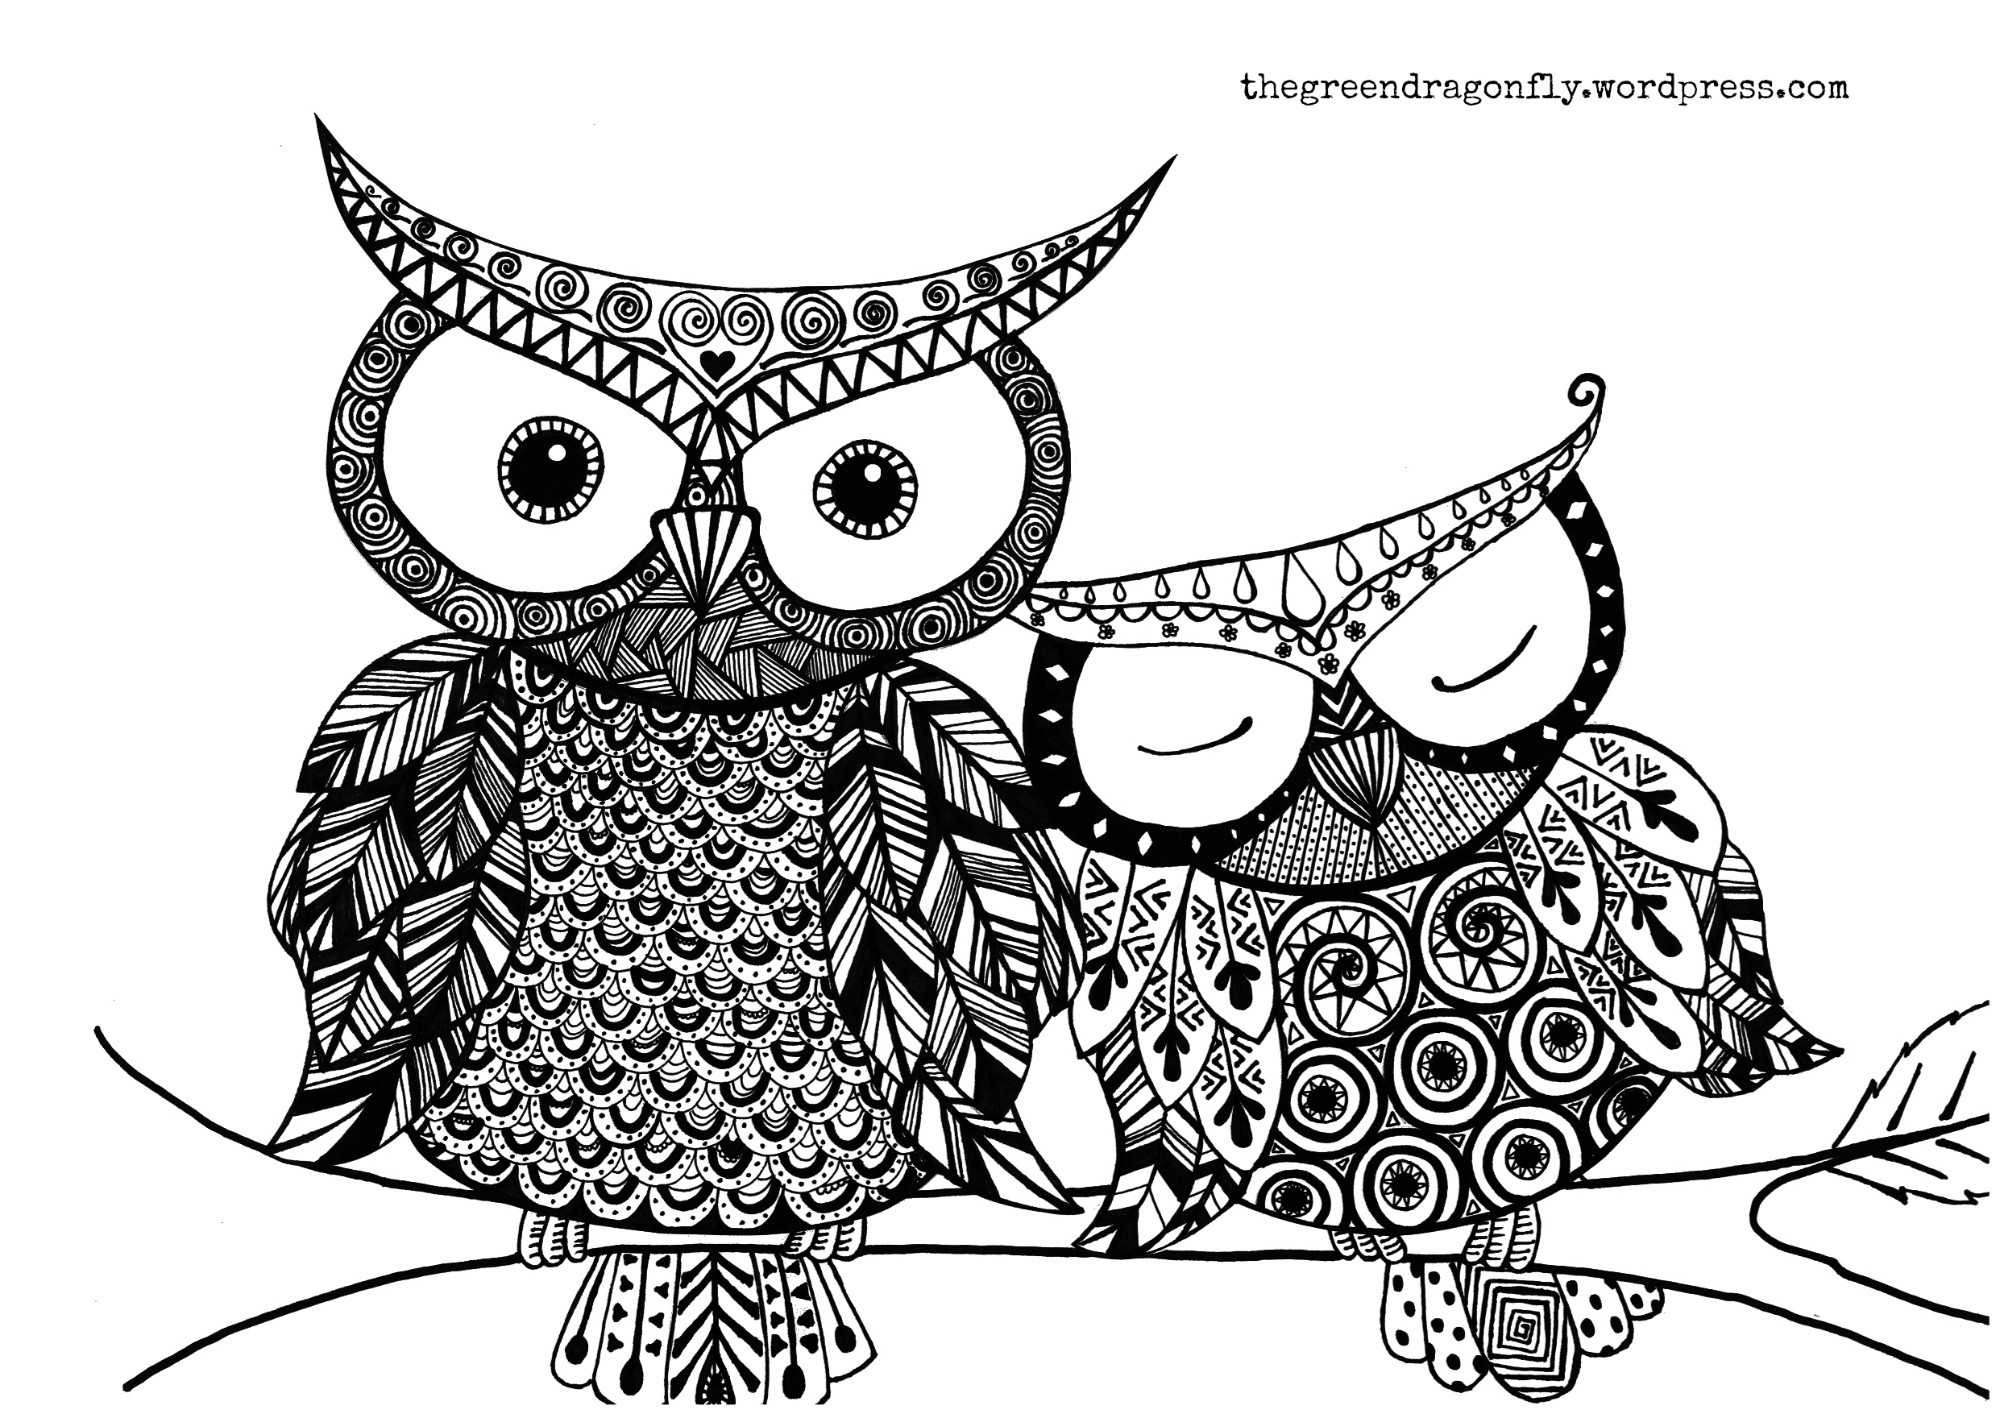 Free Owl Coloring Pages  Decorative Owl Adult Anti Stress Coloring Page Black And